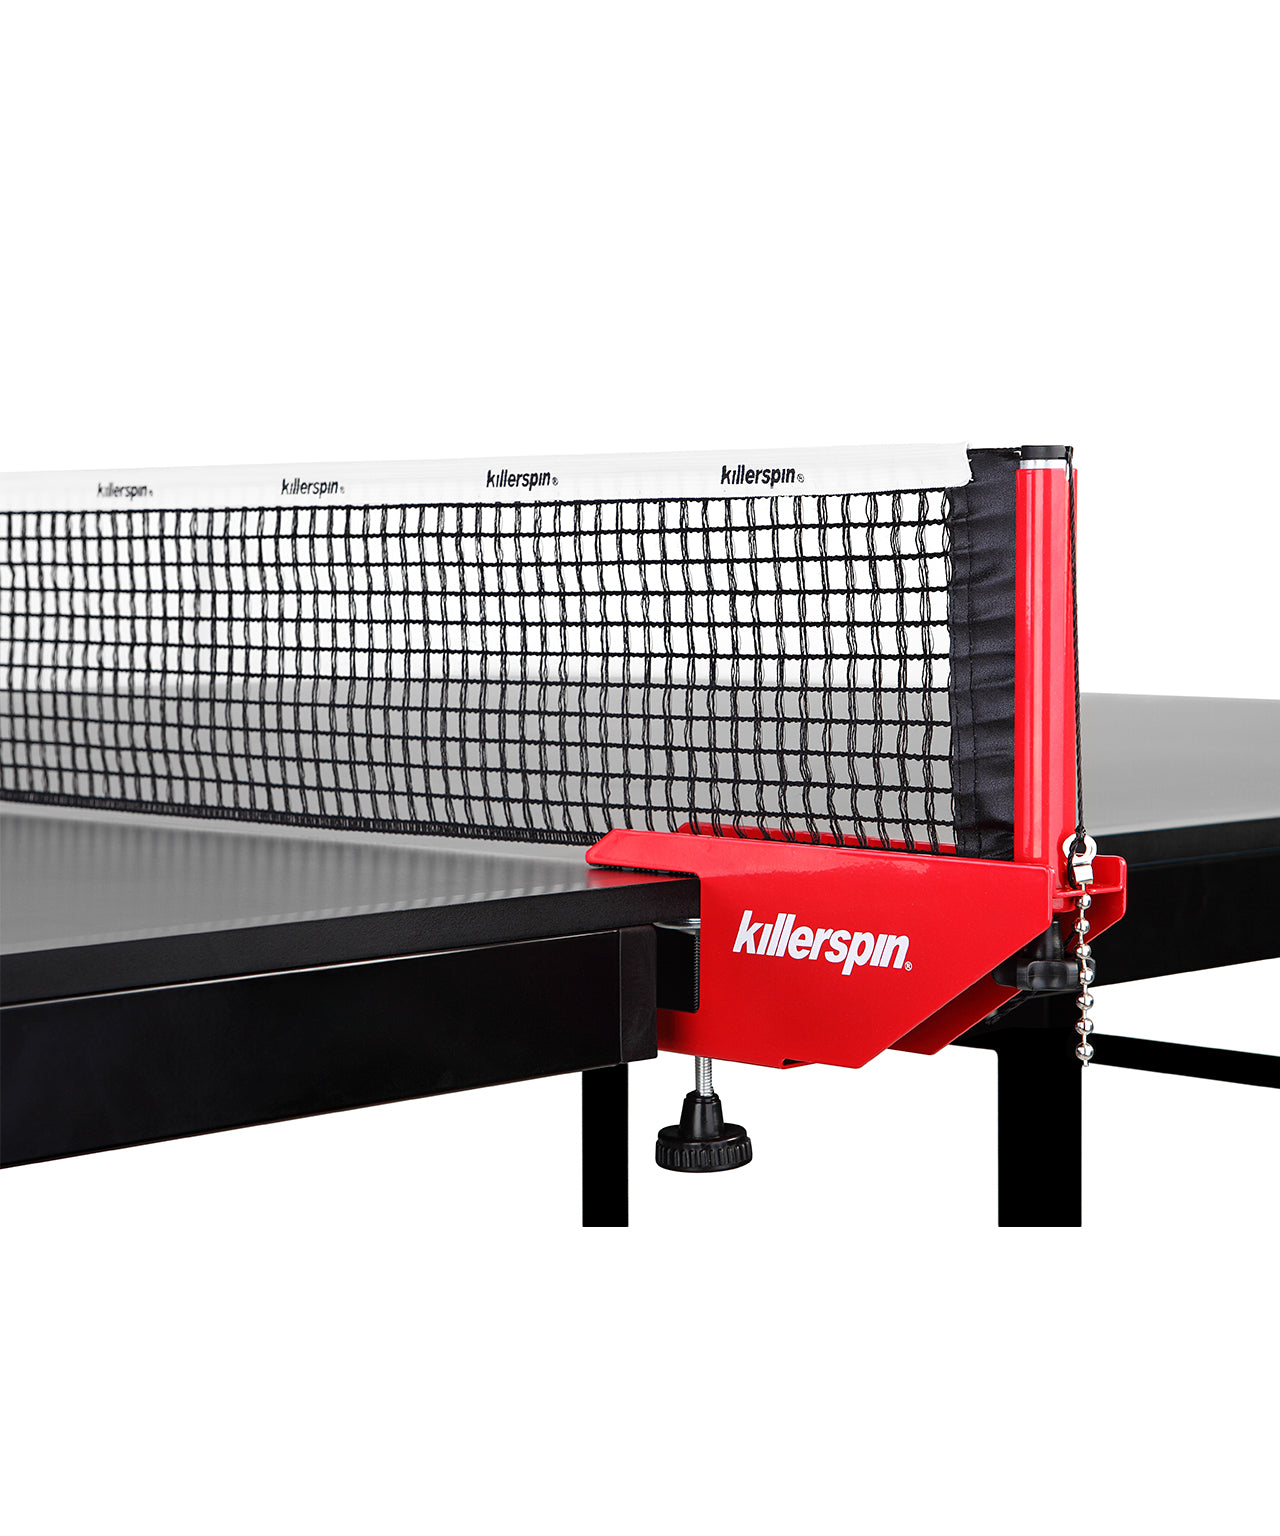 Killerspin MyT Ping Pong Table MyT5 Black Pocket - Net